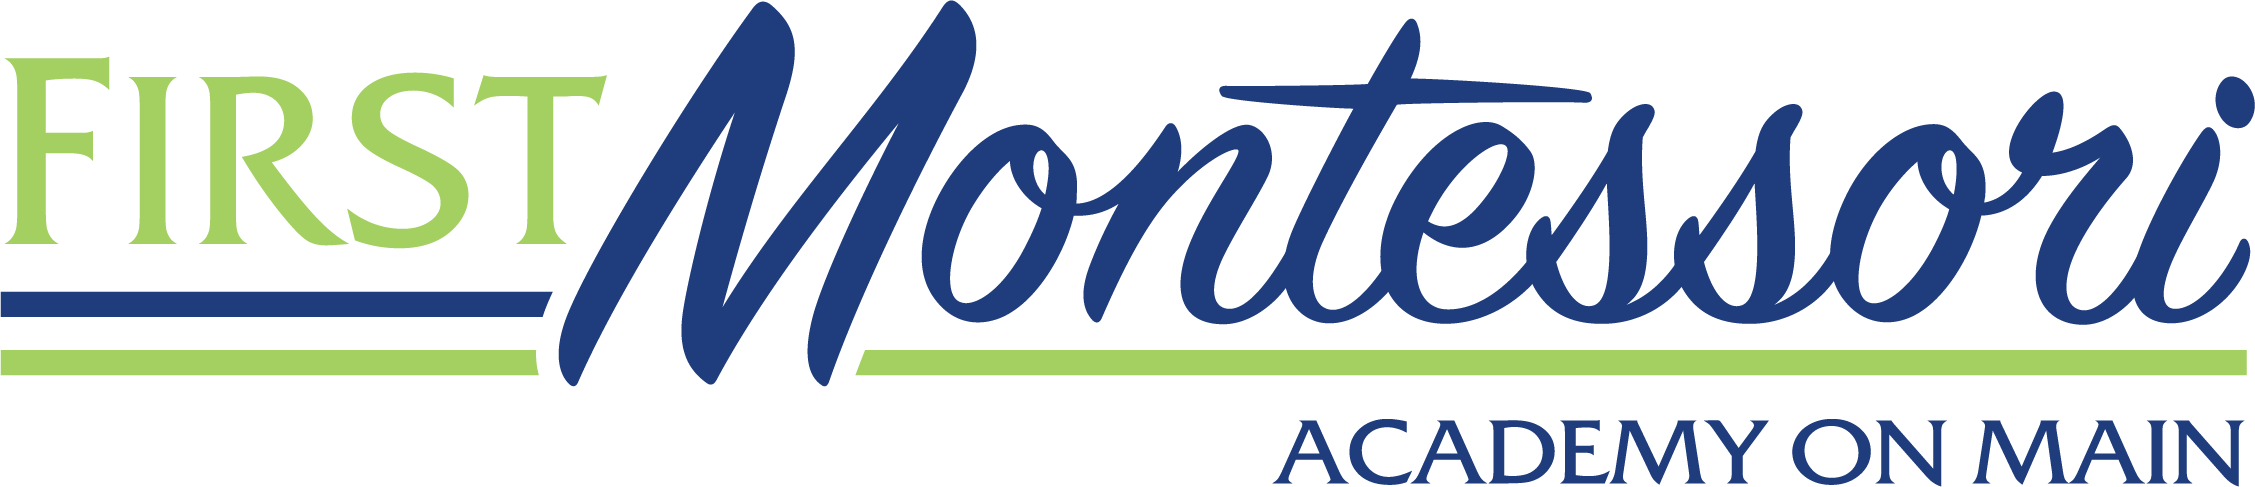 First Montessori Academy